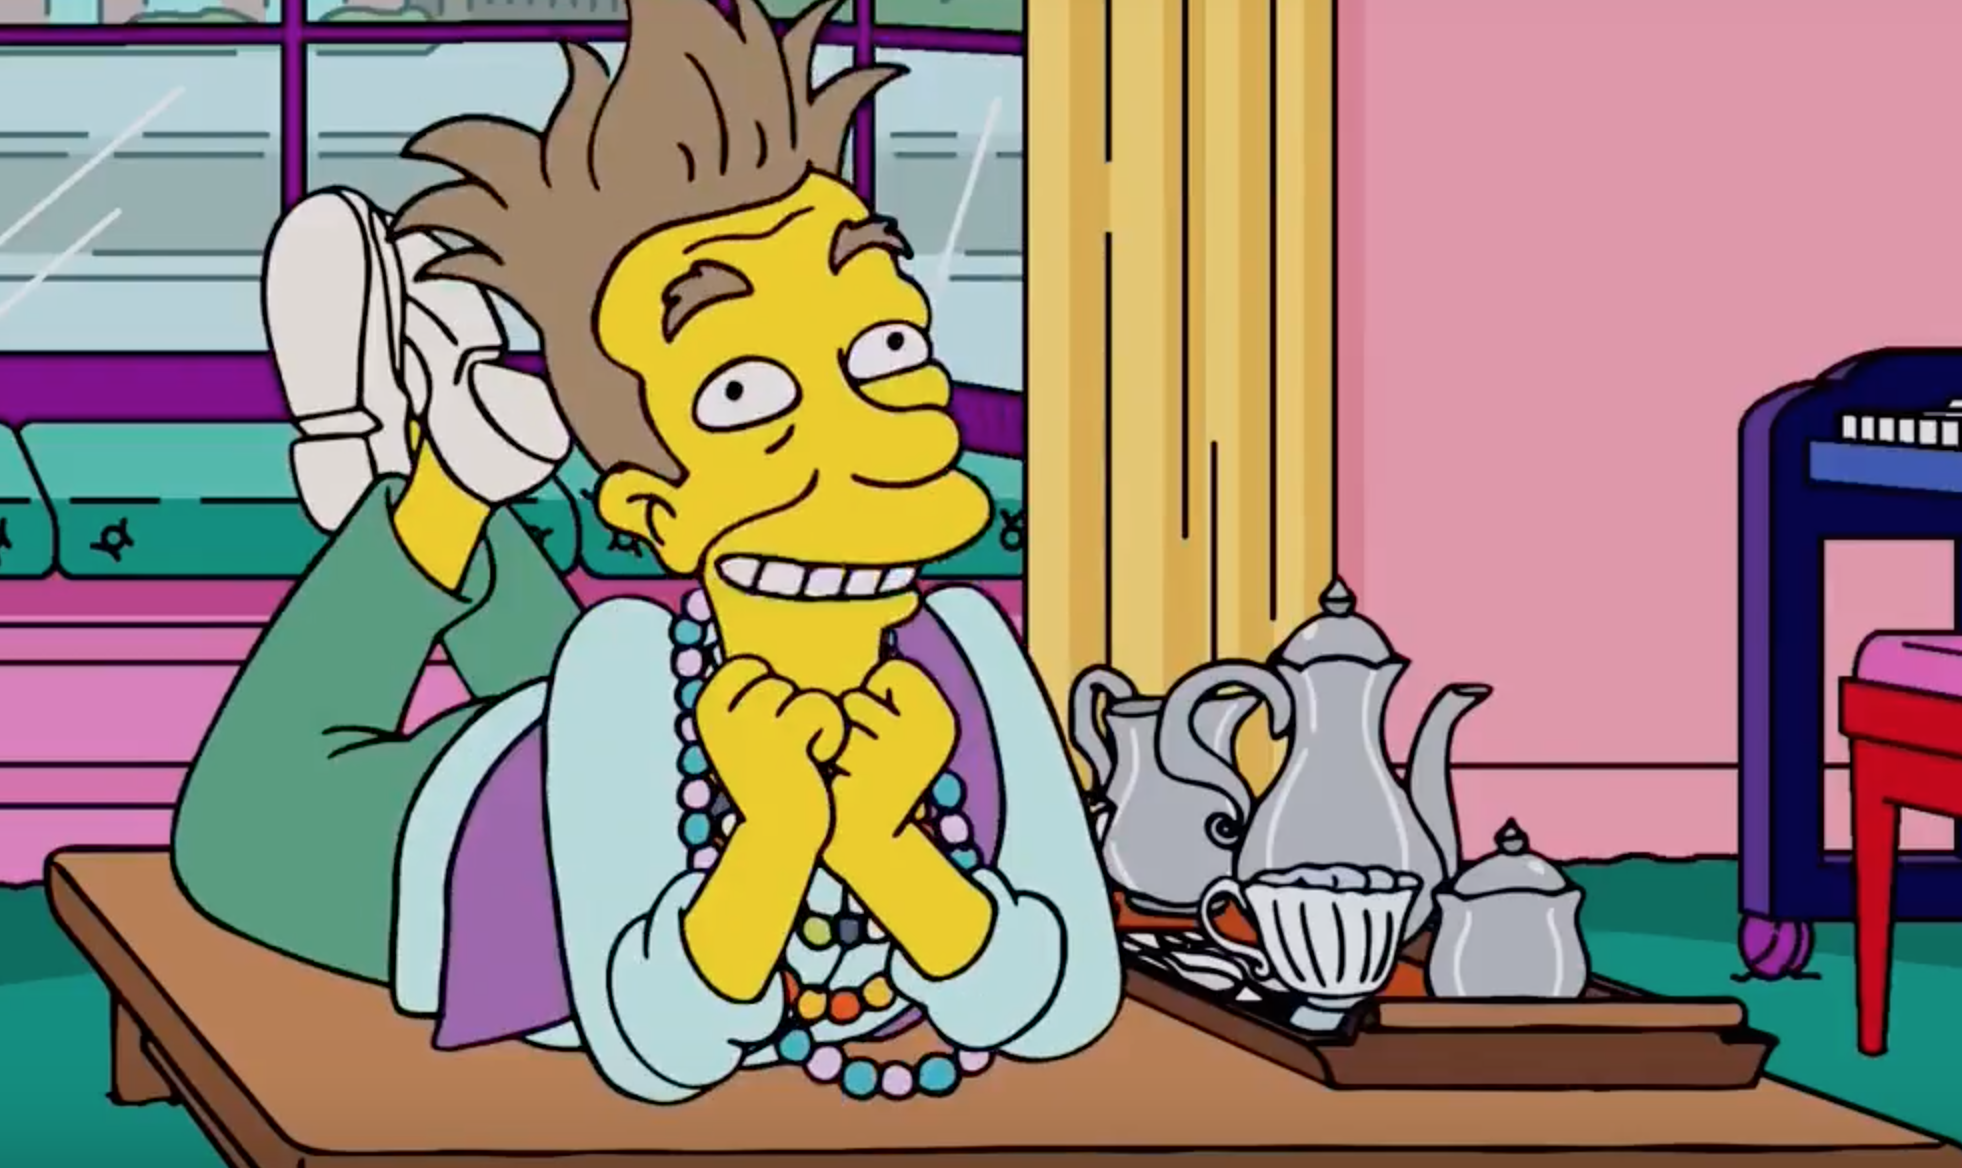 Credit: The Simpsons / FOX. No matter how much LSD you do, the newer episodes aren't great